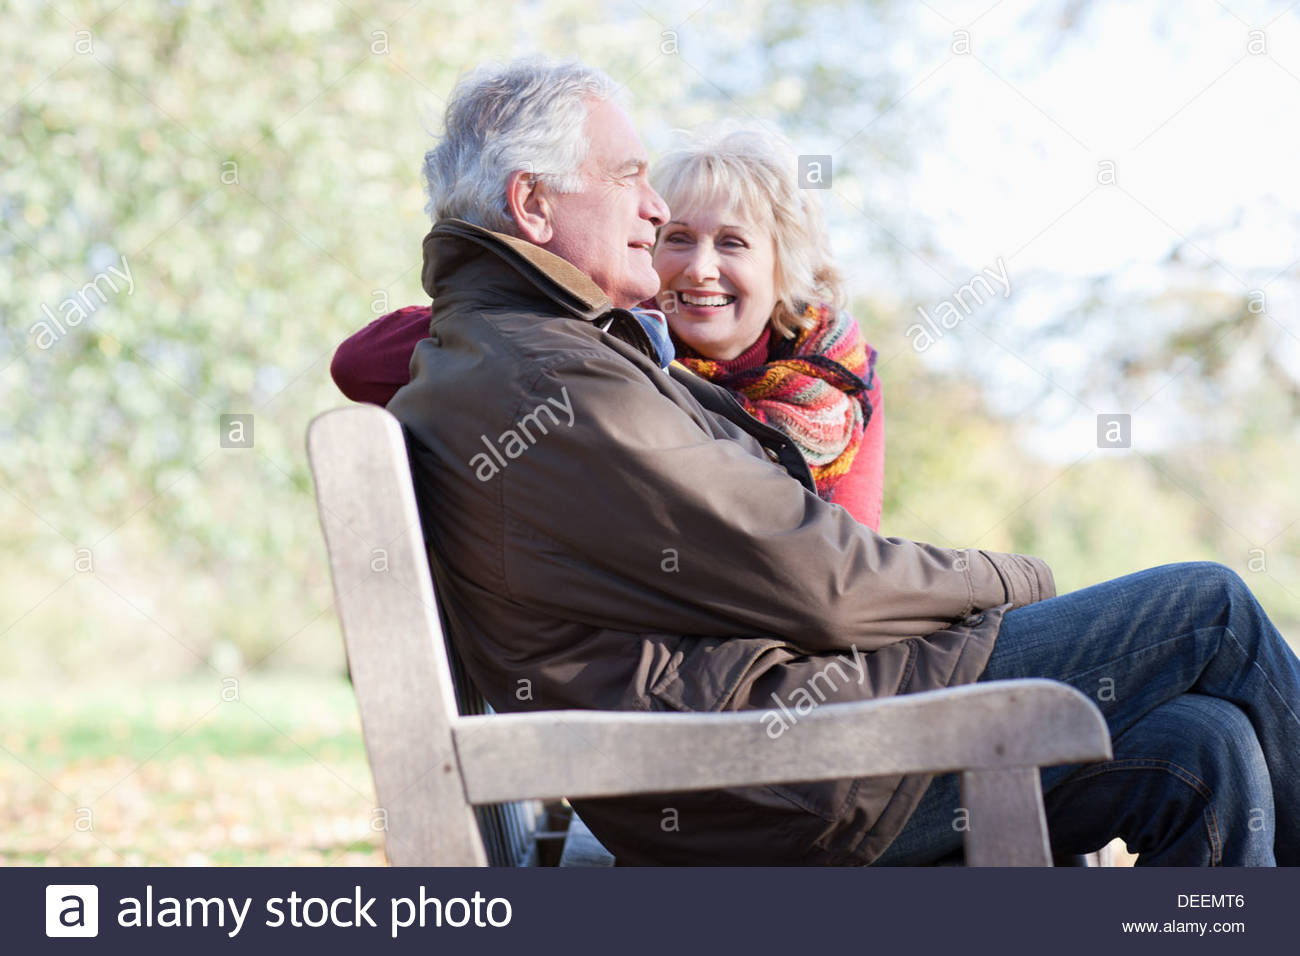 Senior couple hugging in park bench - Stock Image